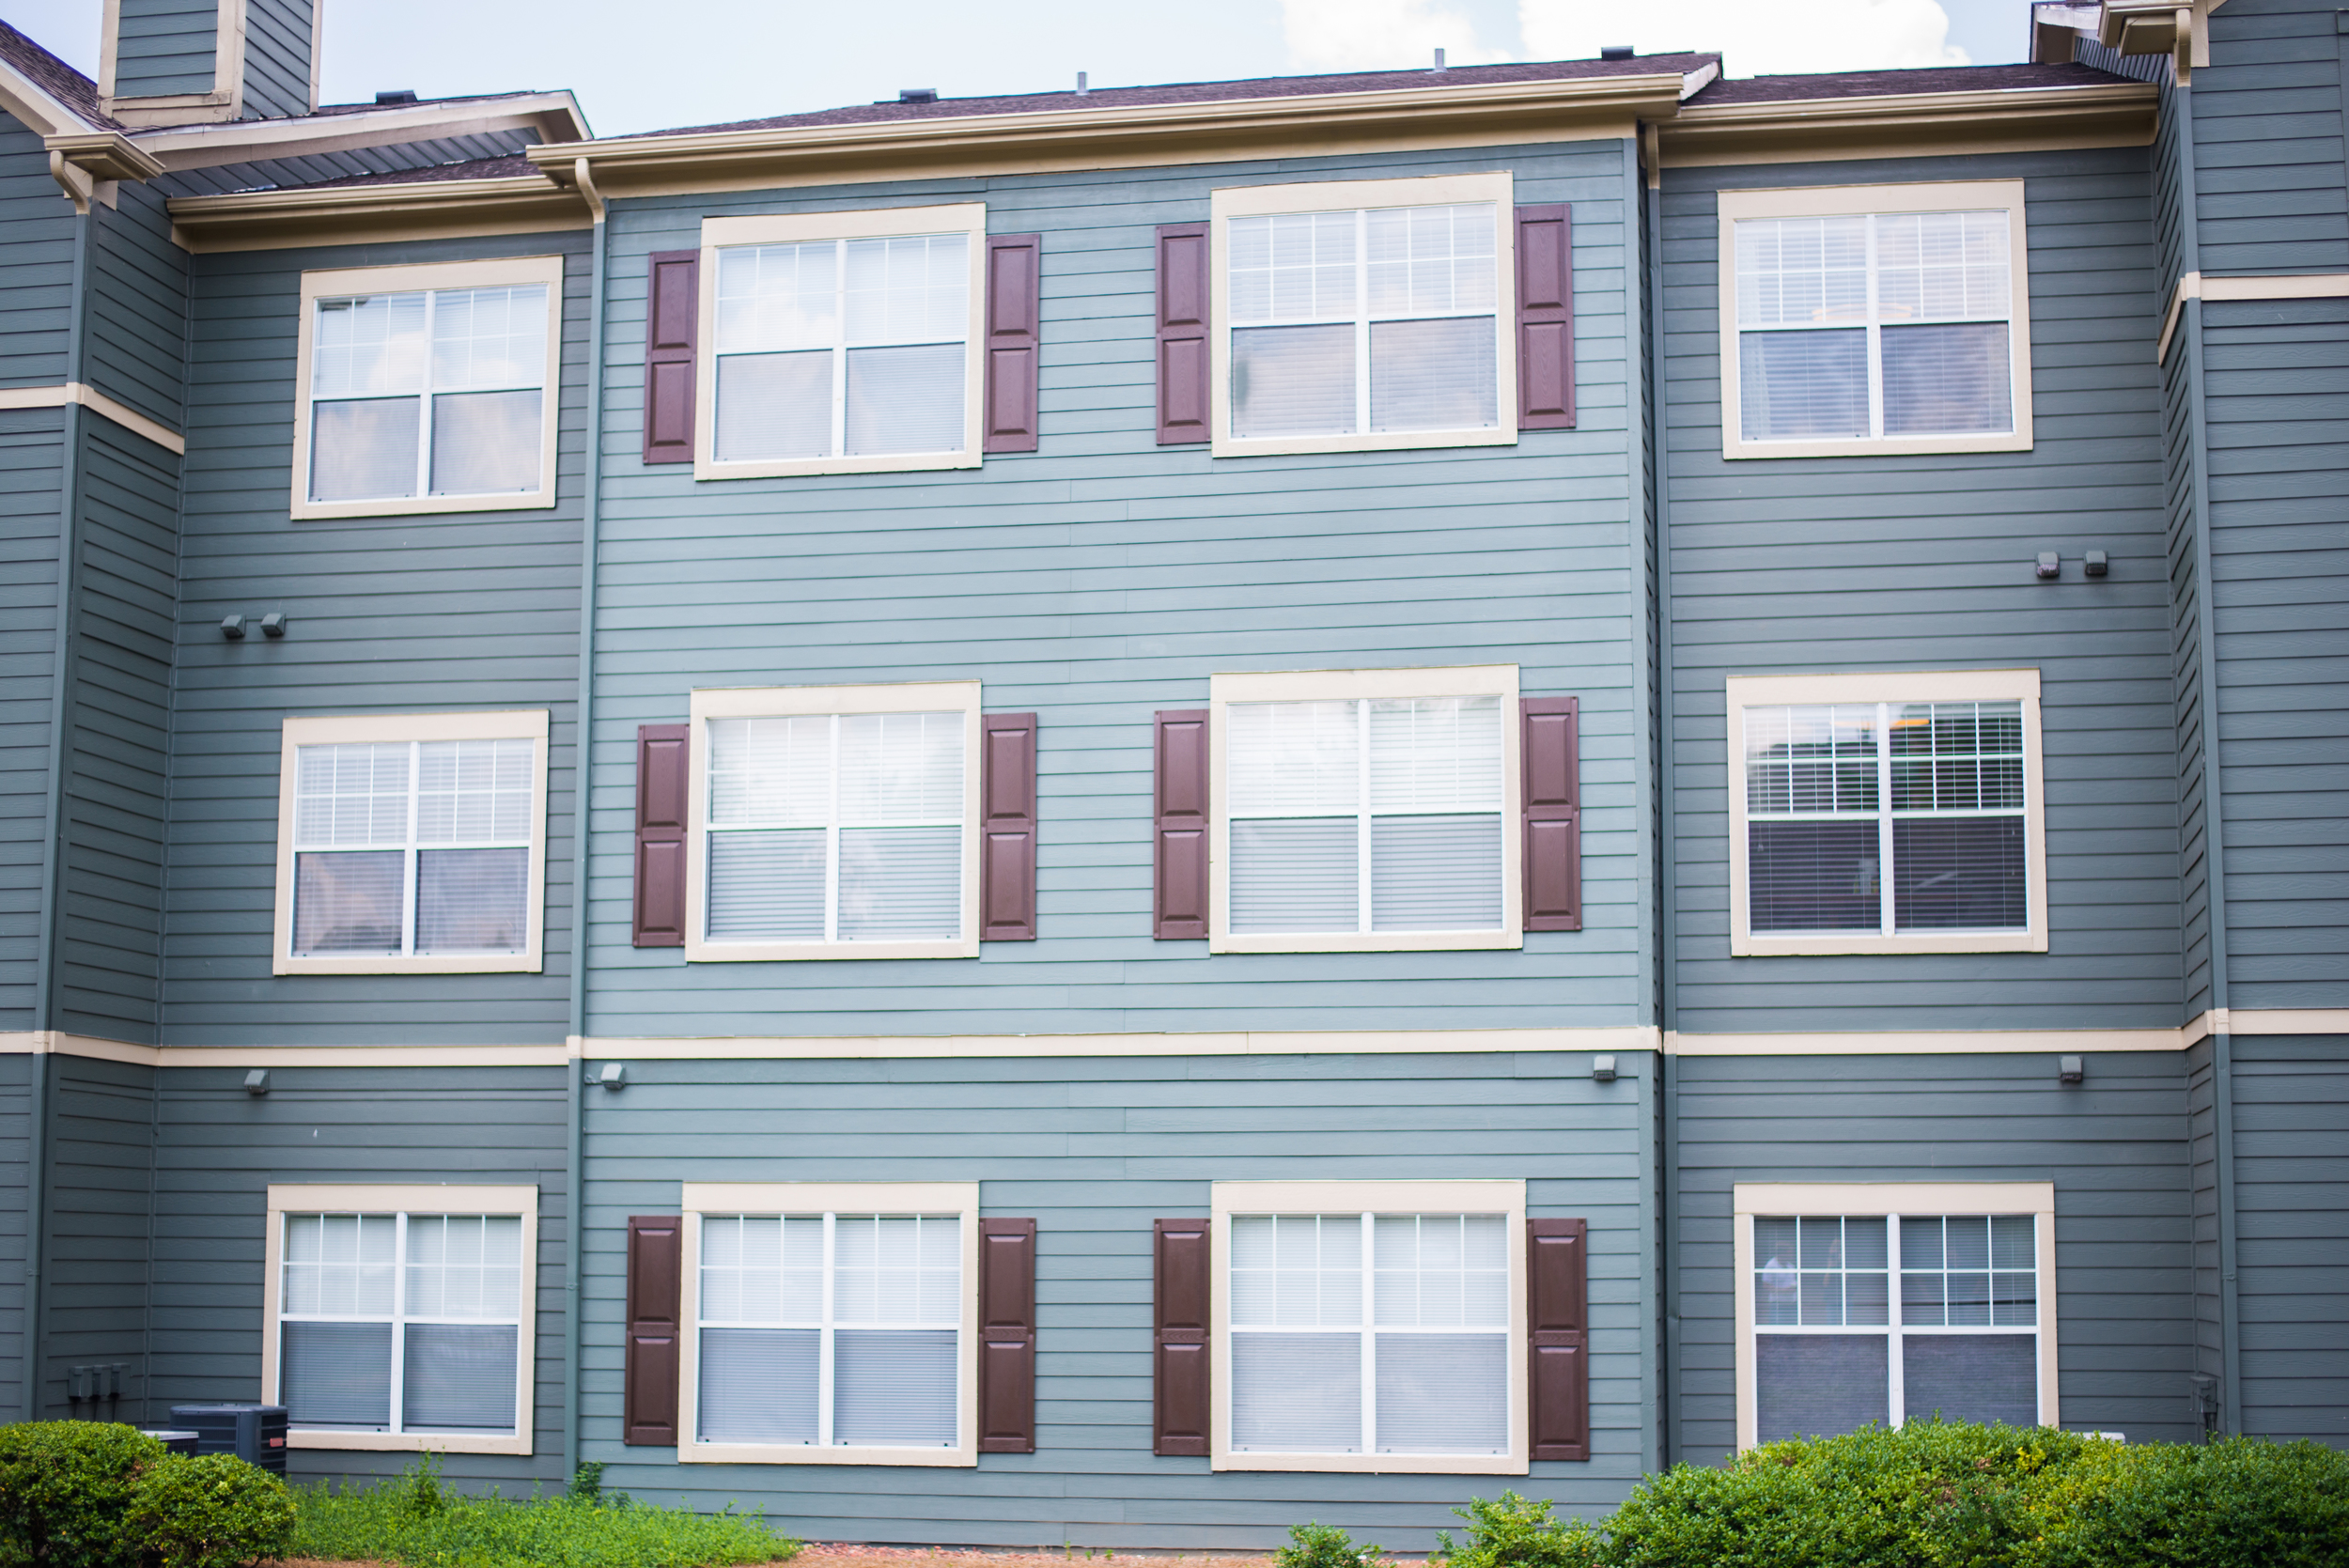 Exterior Siding and Paint